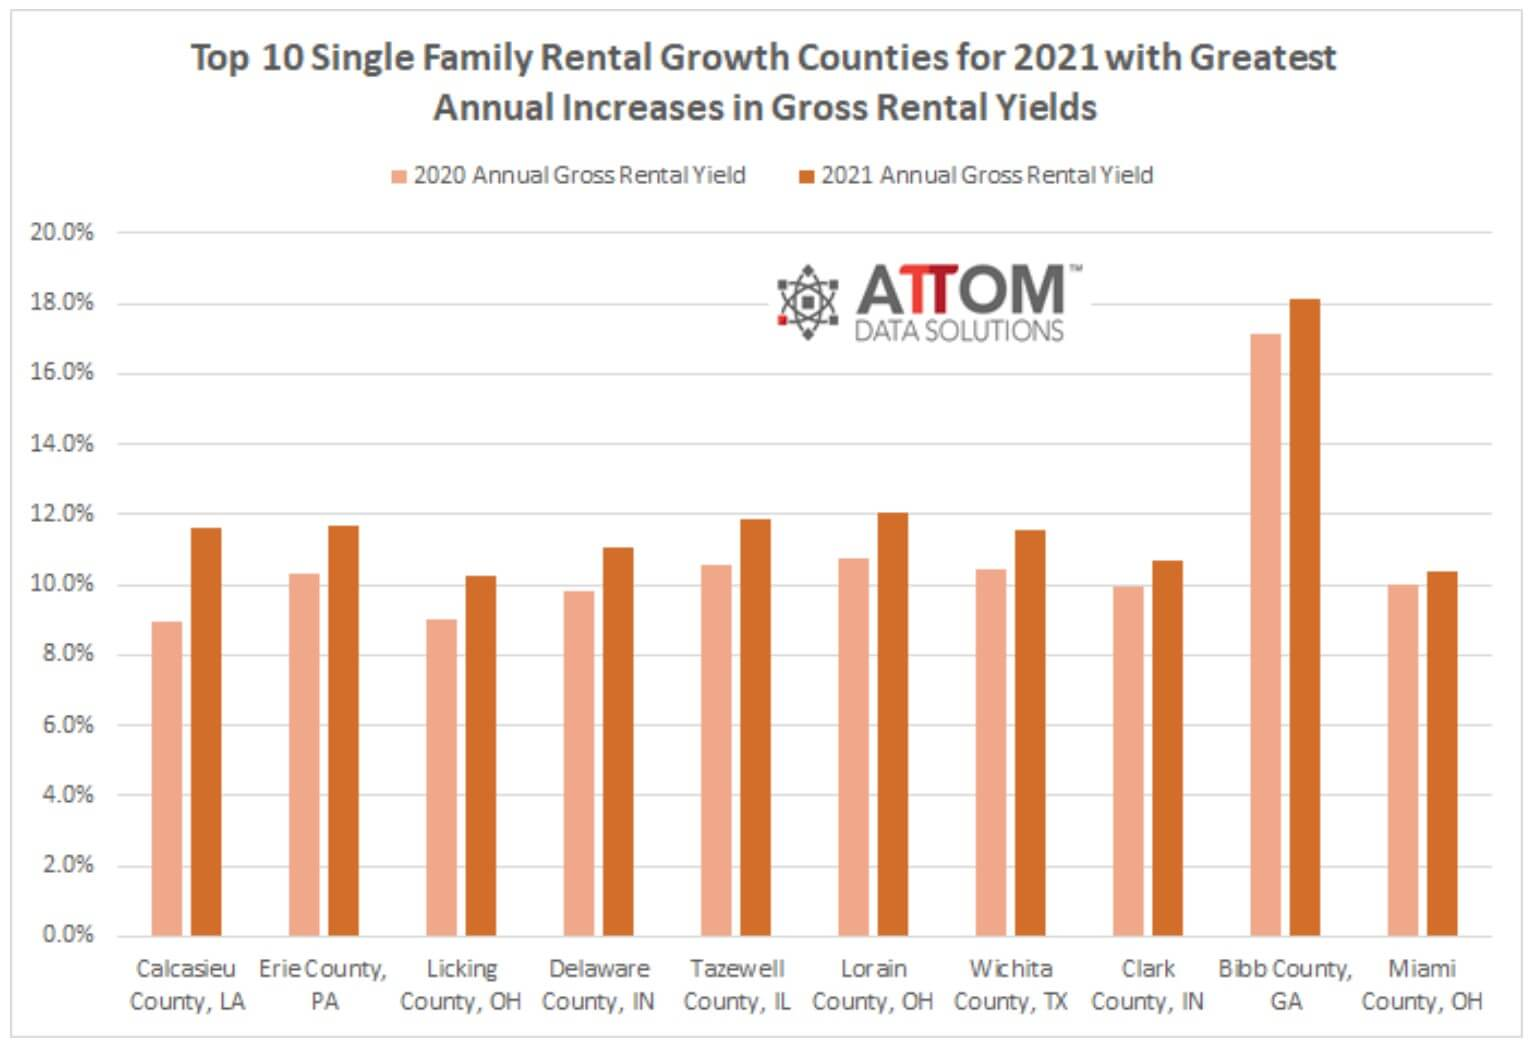 Counties with the highest rental yield growth in 2021 - ATTOM